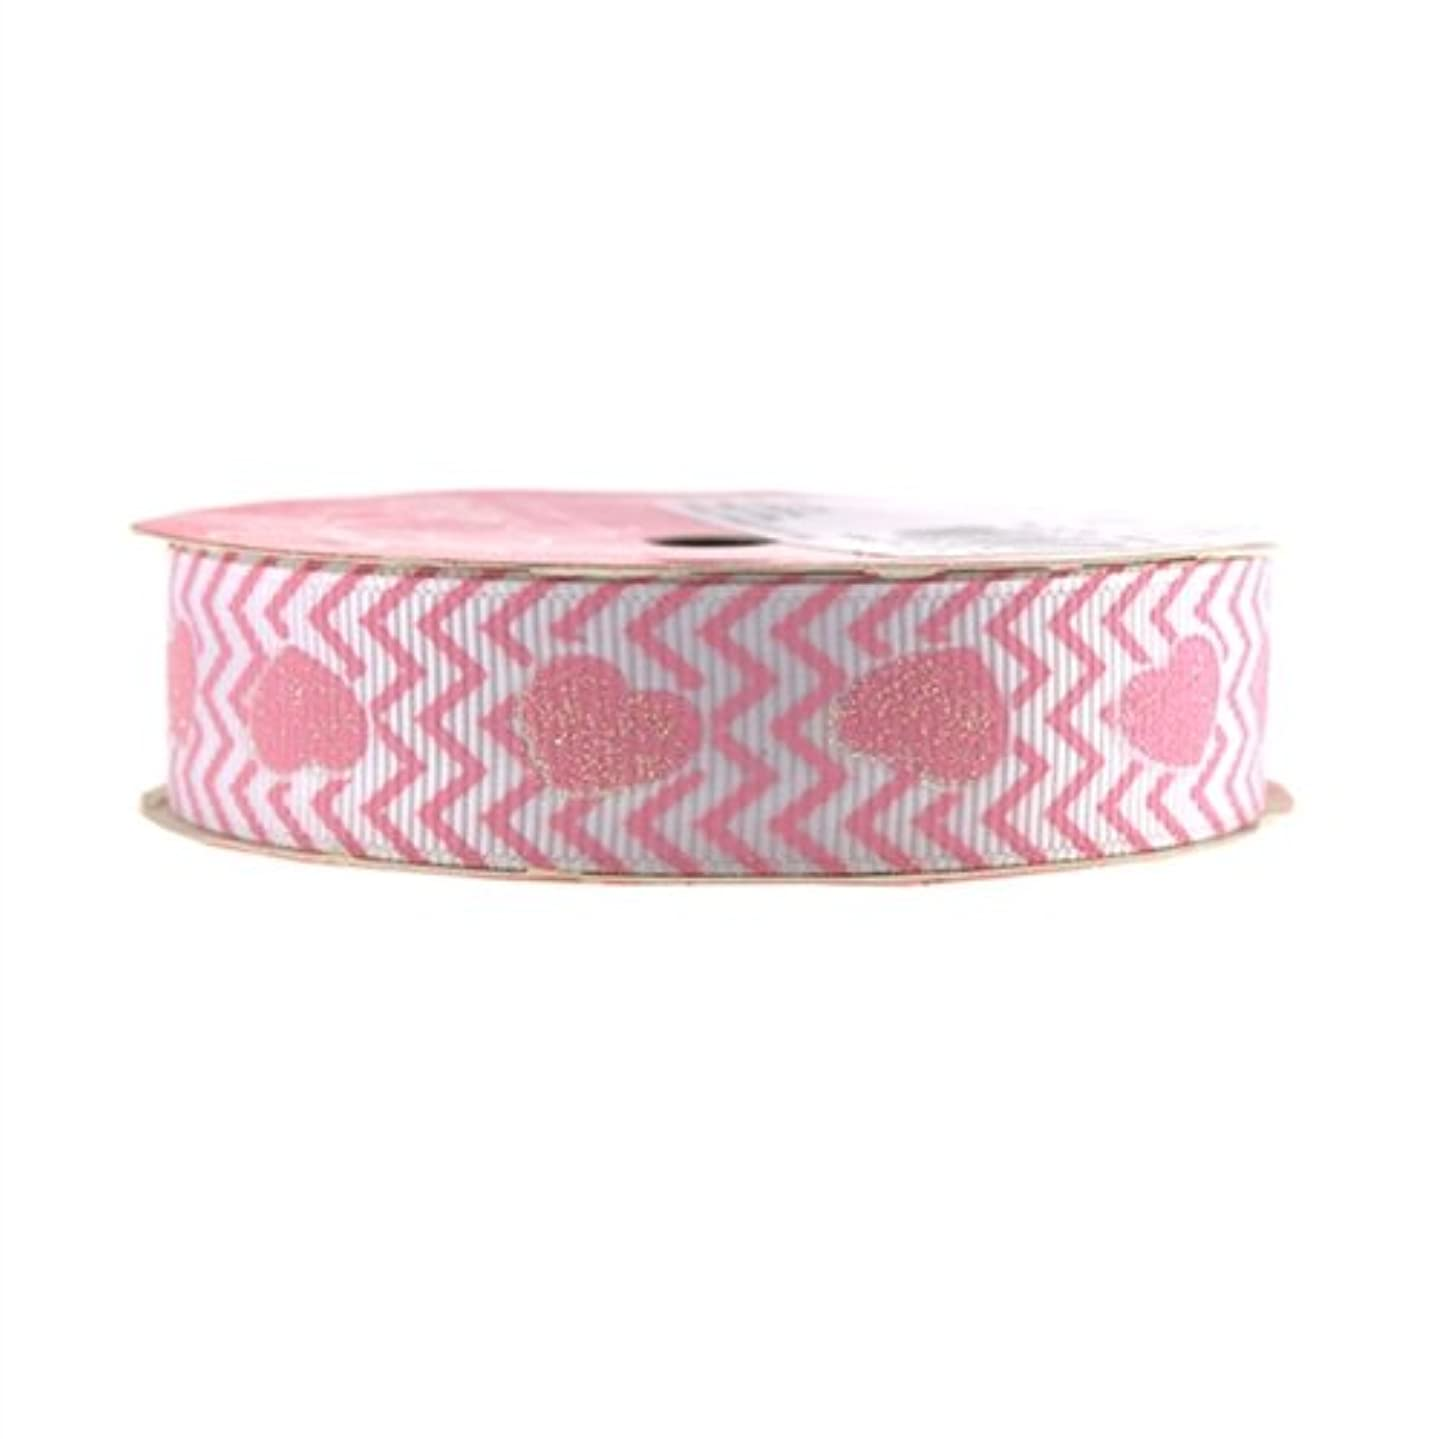 Homeford Firefly Imports Glitter Hearts Chevron Grosgrain Ribbon, 7/8-Inch, 4 Yards, Light Pink 7/8